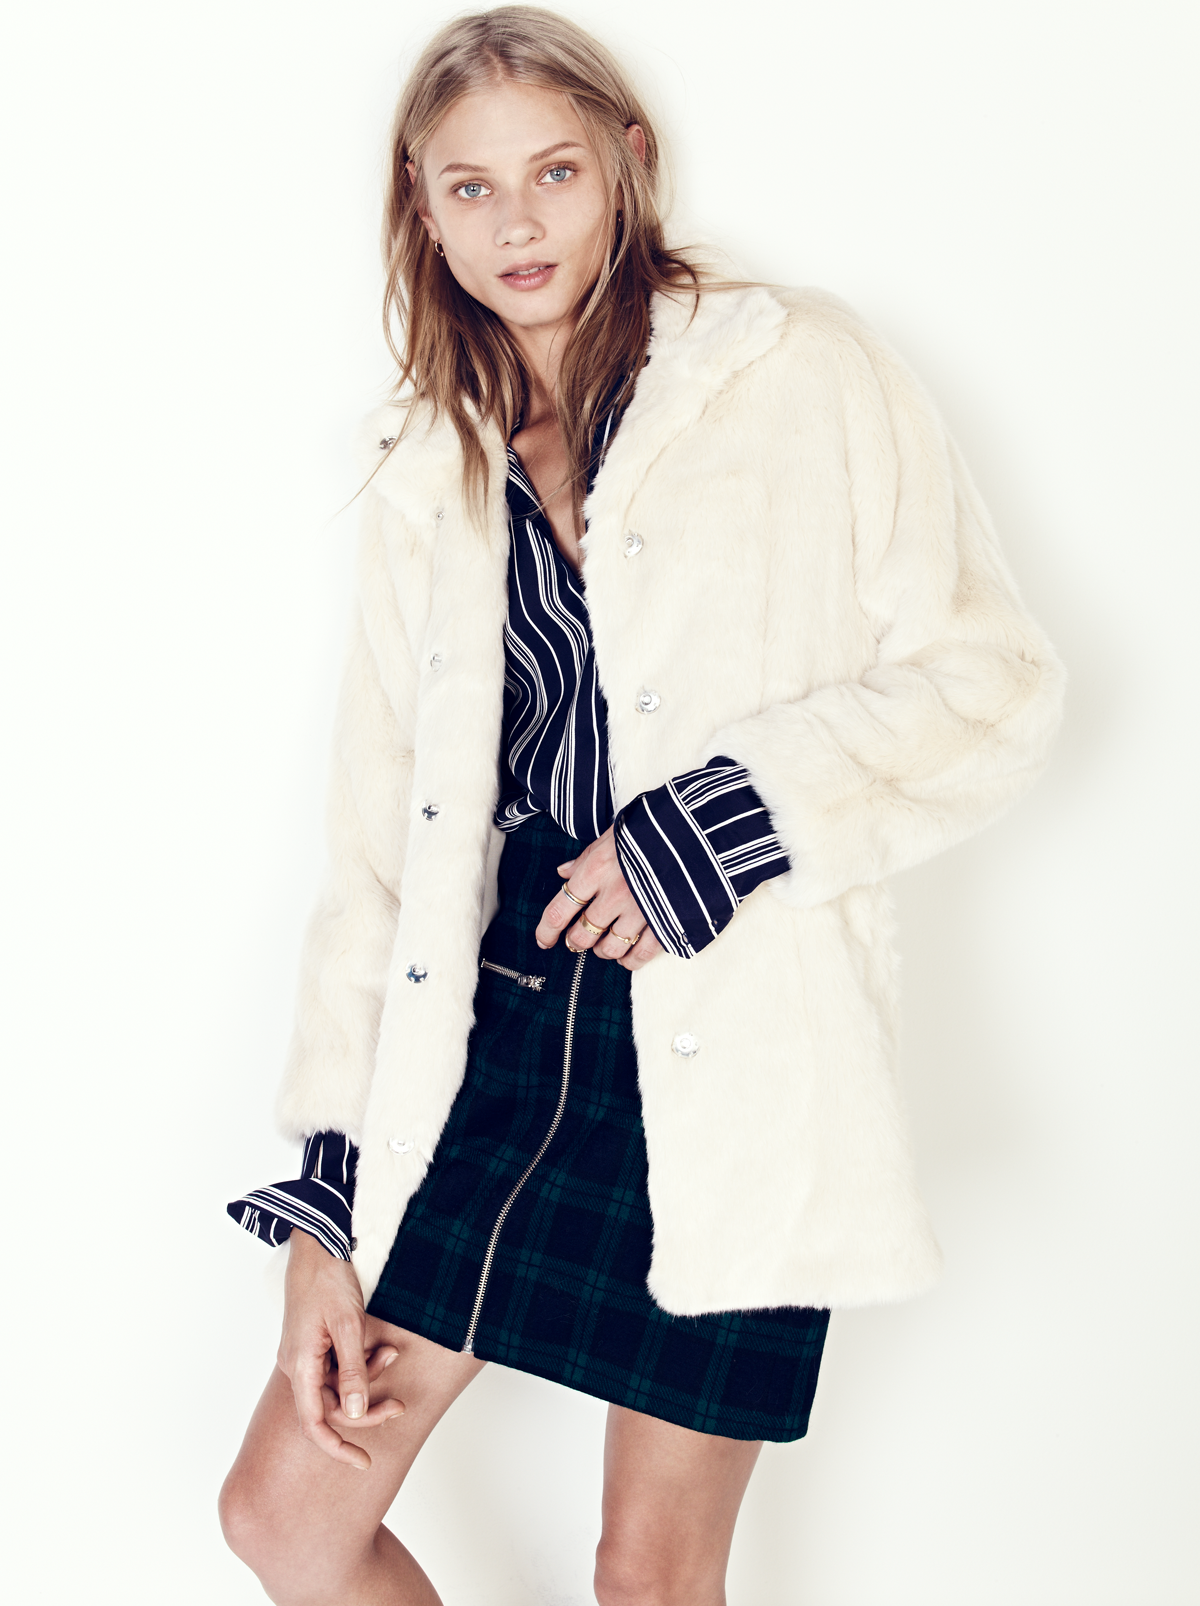 holiday outfit idea: madewell stagedoor coat worn with the zip skirt + silk tunic shirt. #giftwell